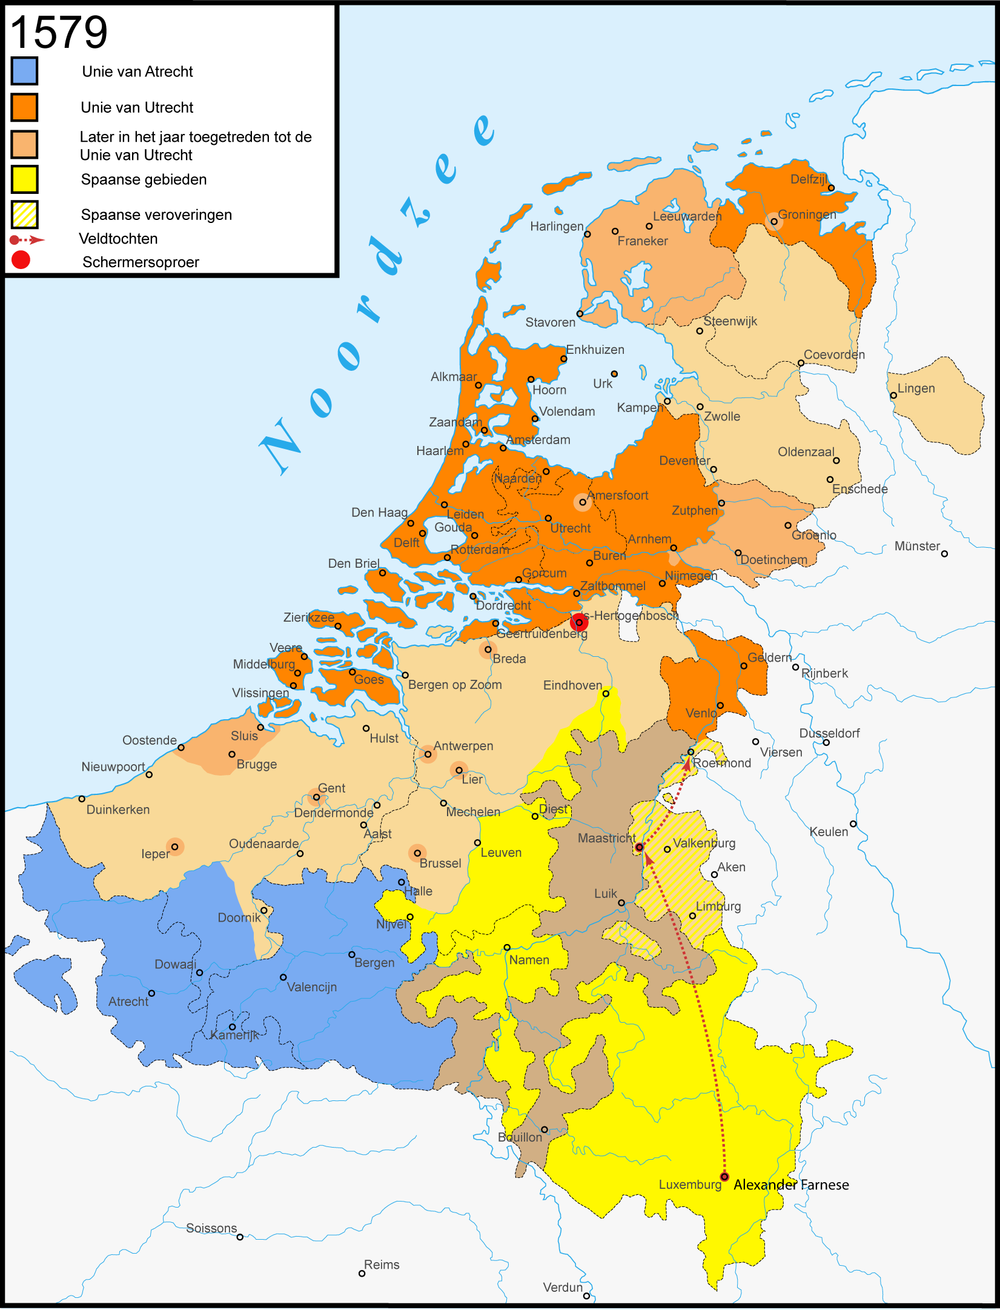 Unions of Utrecht and Arras